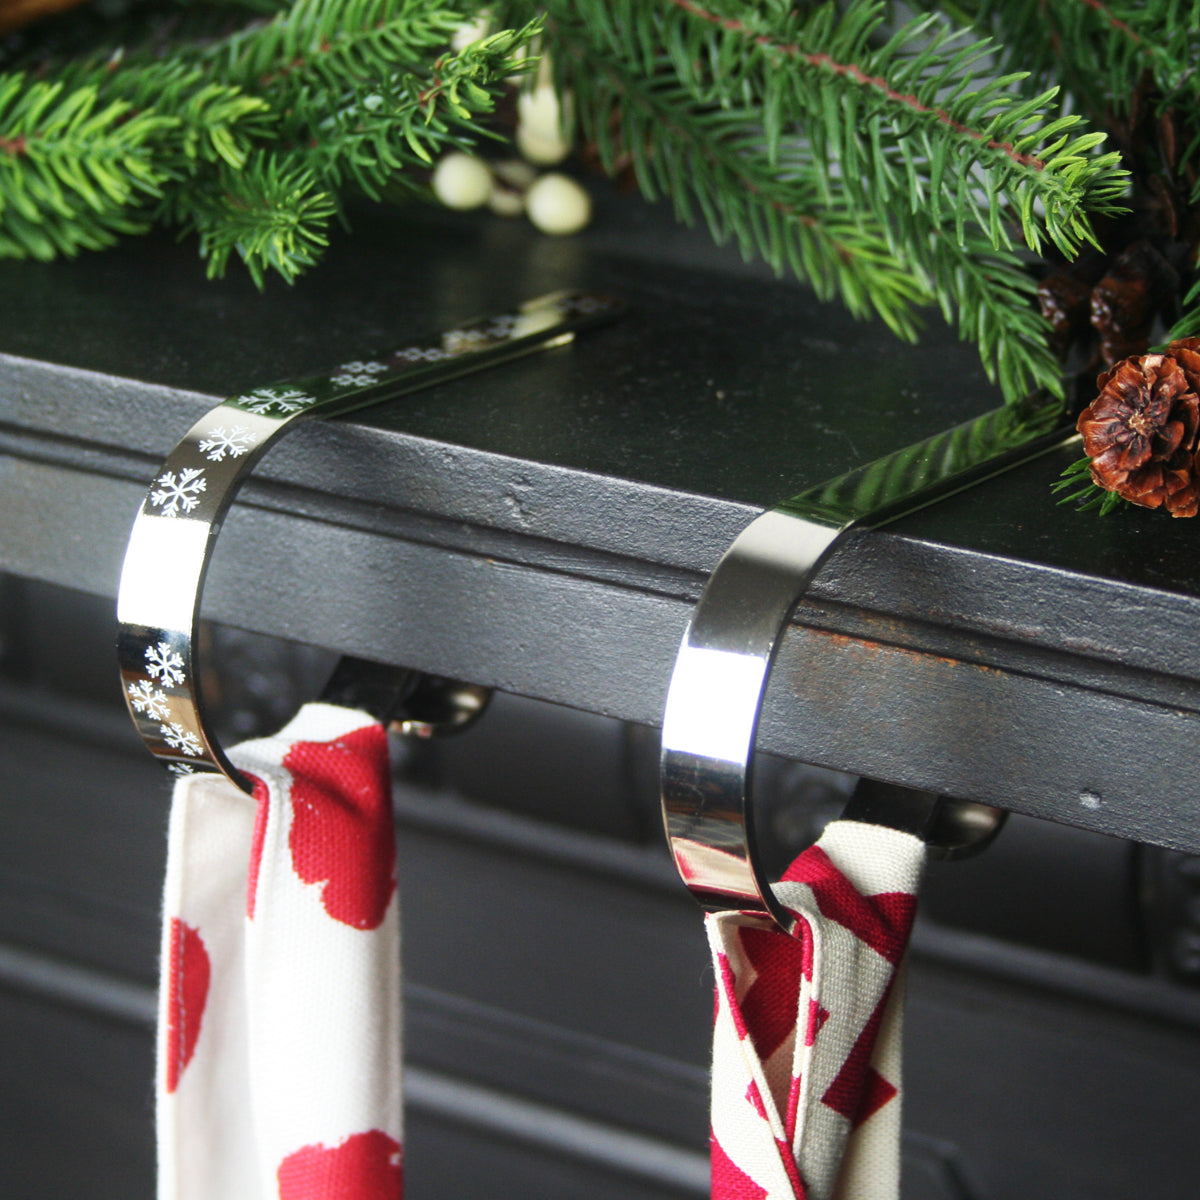 Mantle Clip For Christmas Stockings Shiny Silver Hide Seek Textiles